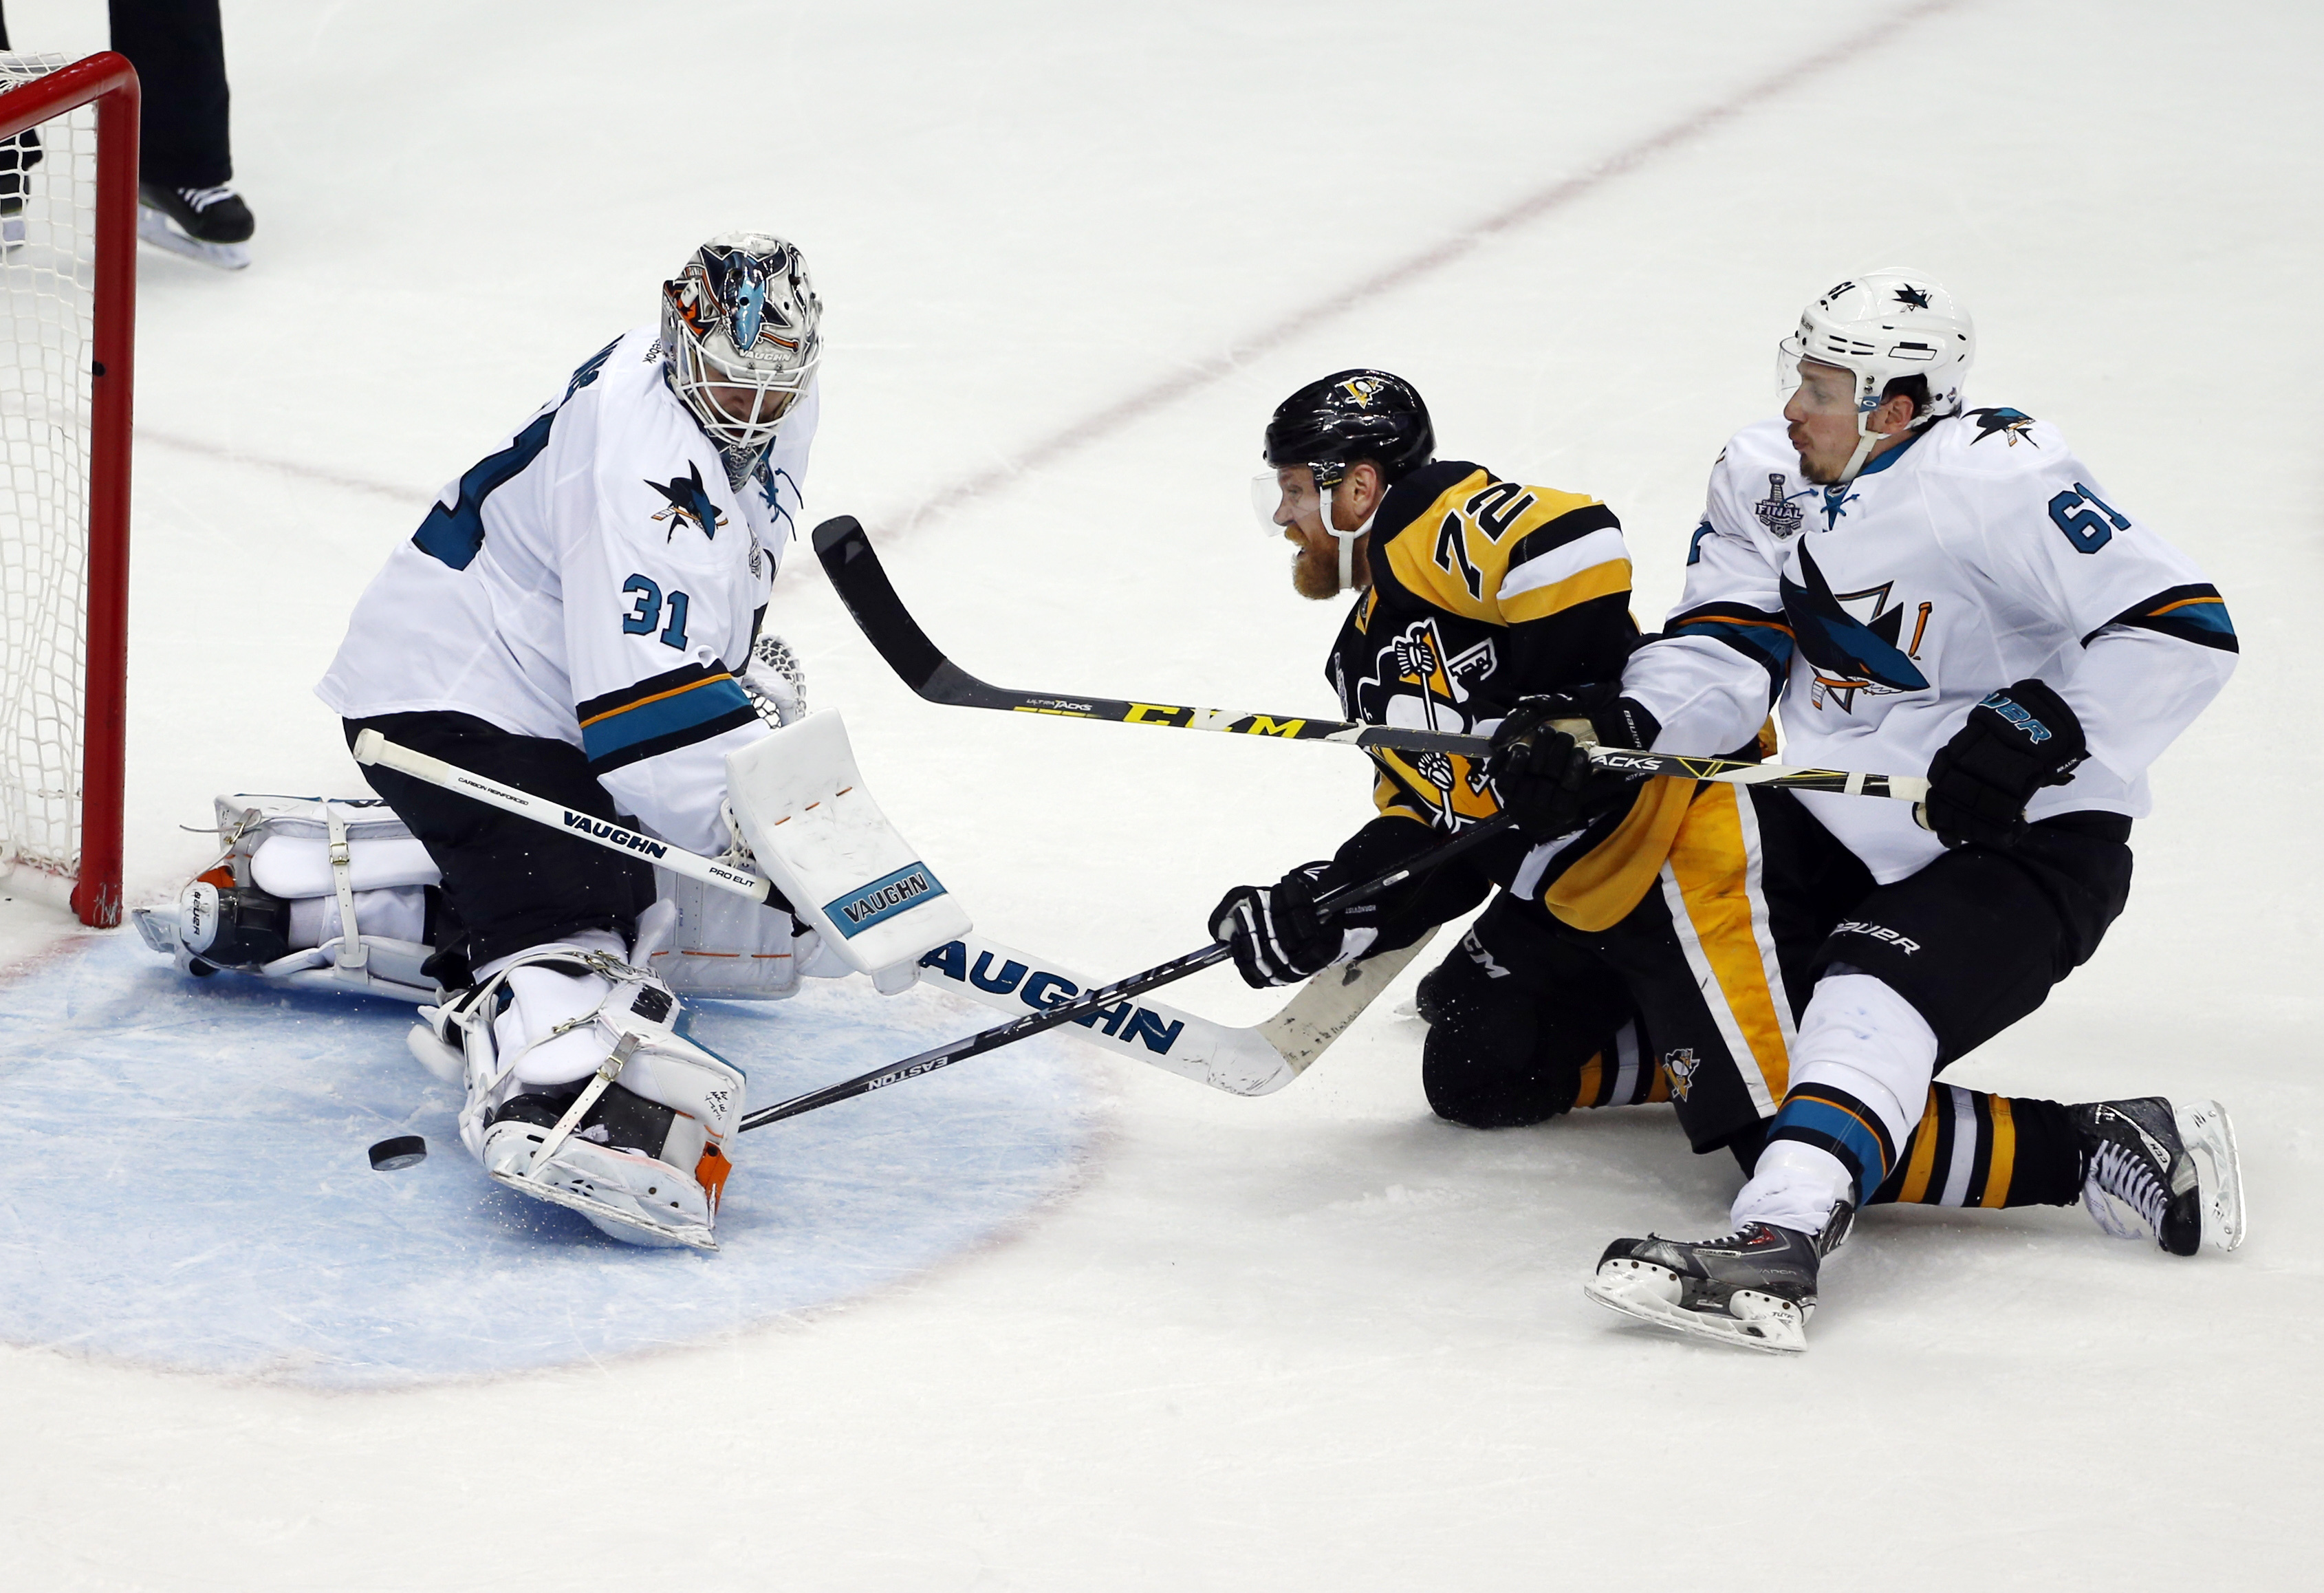 San Jose Sharks goalie Martin Jones (31) turns away a shot by Pittsburgh Penguins' Patric Hornqvist (72) as Sharks' Justin Braun (61) defends during the second period in Game 5 of the NHL hockey Stanley Cup Finals on Thursday, June 9, 2016, in Pittsburgh.